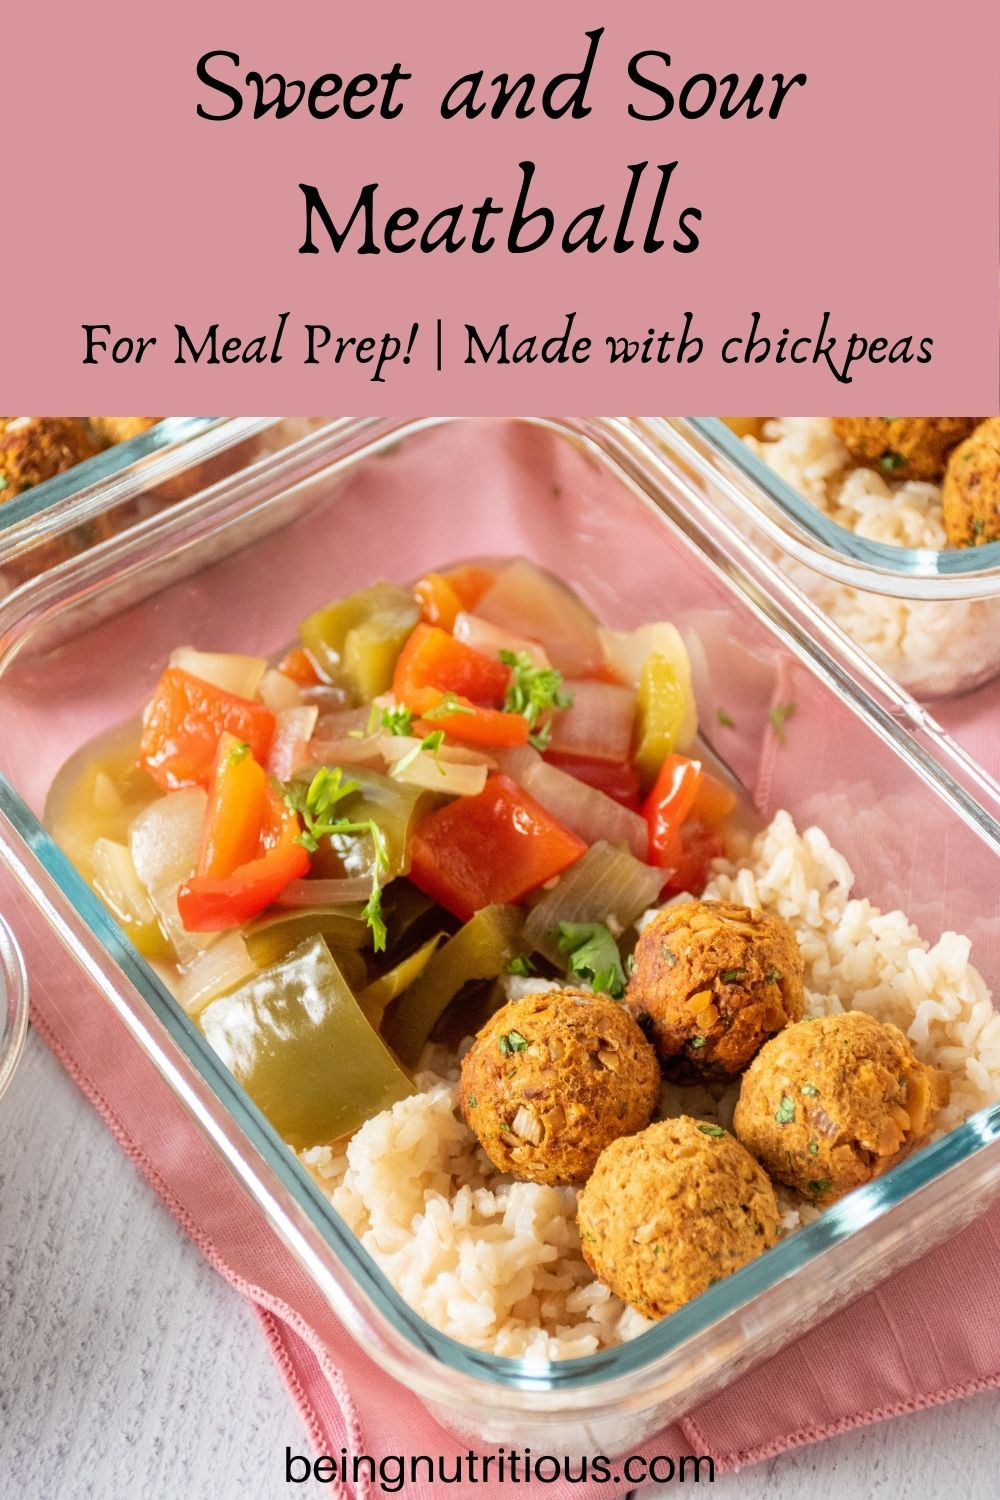 Glass meal prep container filled with rice, meatballs, and onions and bell peppers. Text overlay: Sweet and Sour Meatballs; for meal prep! Made with chickpeas.